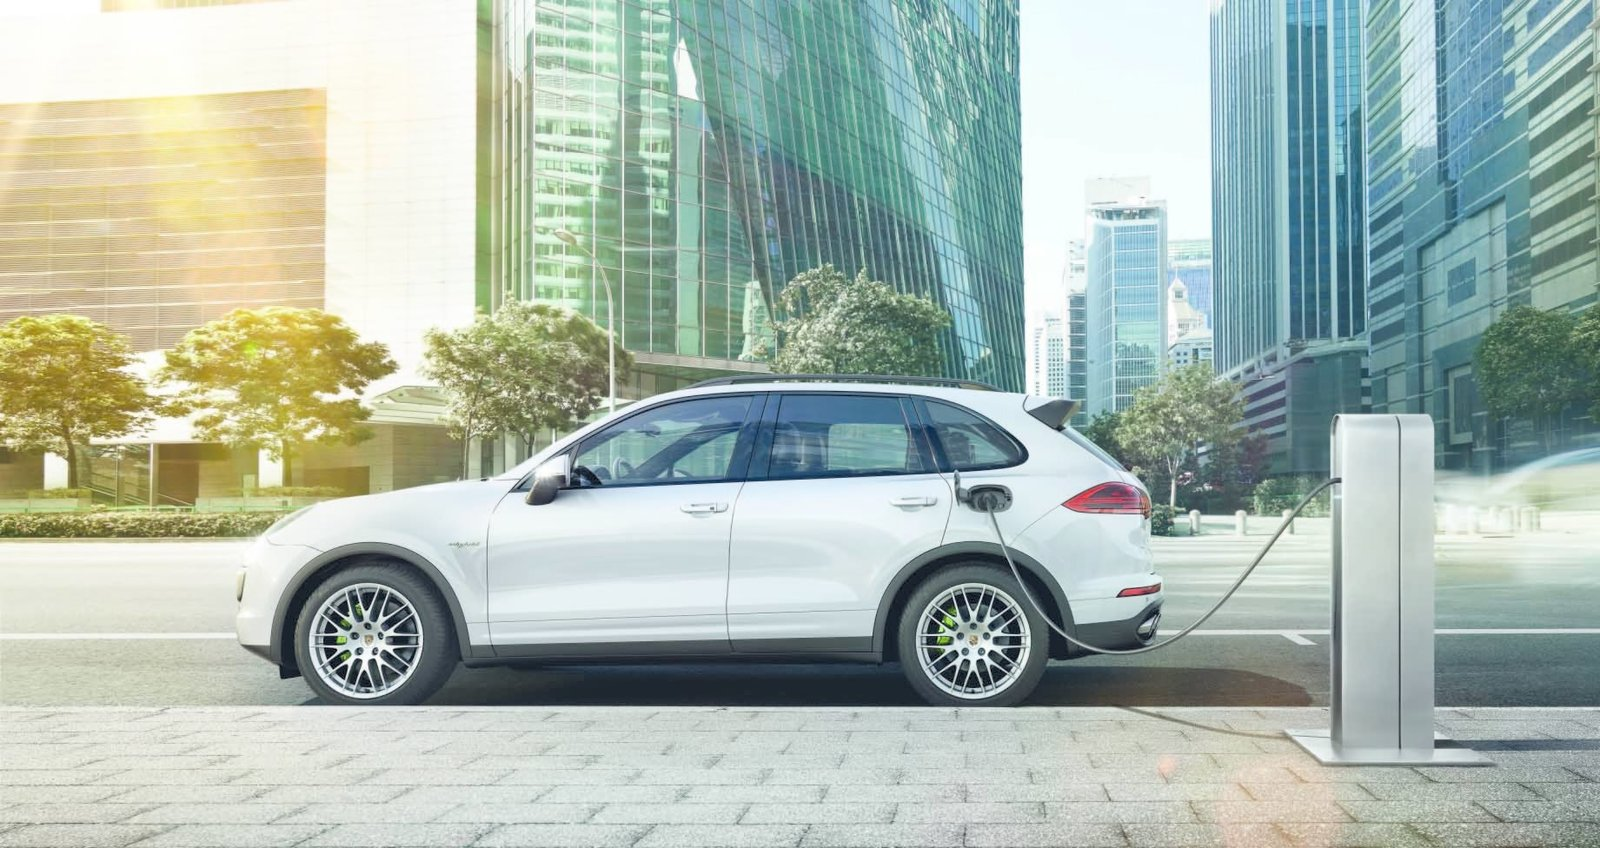 All four versions feature new fuel-saving functions, but the Cayenne S E-Hybrid take the gold when it comes to green. Capable of being driven on pure electric power, the trailblazing vehicle is the world's first plug-in hybrid luxury SUV.  Photo 6 of 8 in New Porsche Cayenne Editions Promise Greater Efficiency Without Compromising Performance